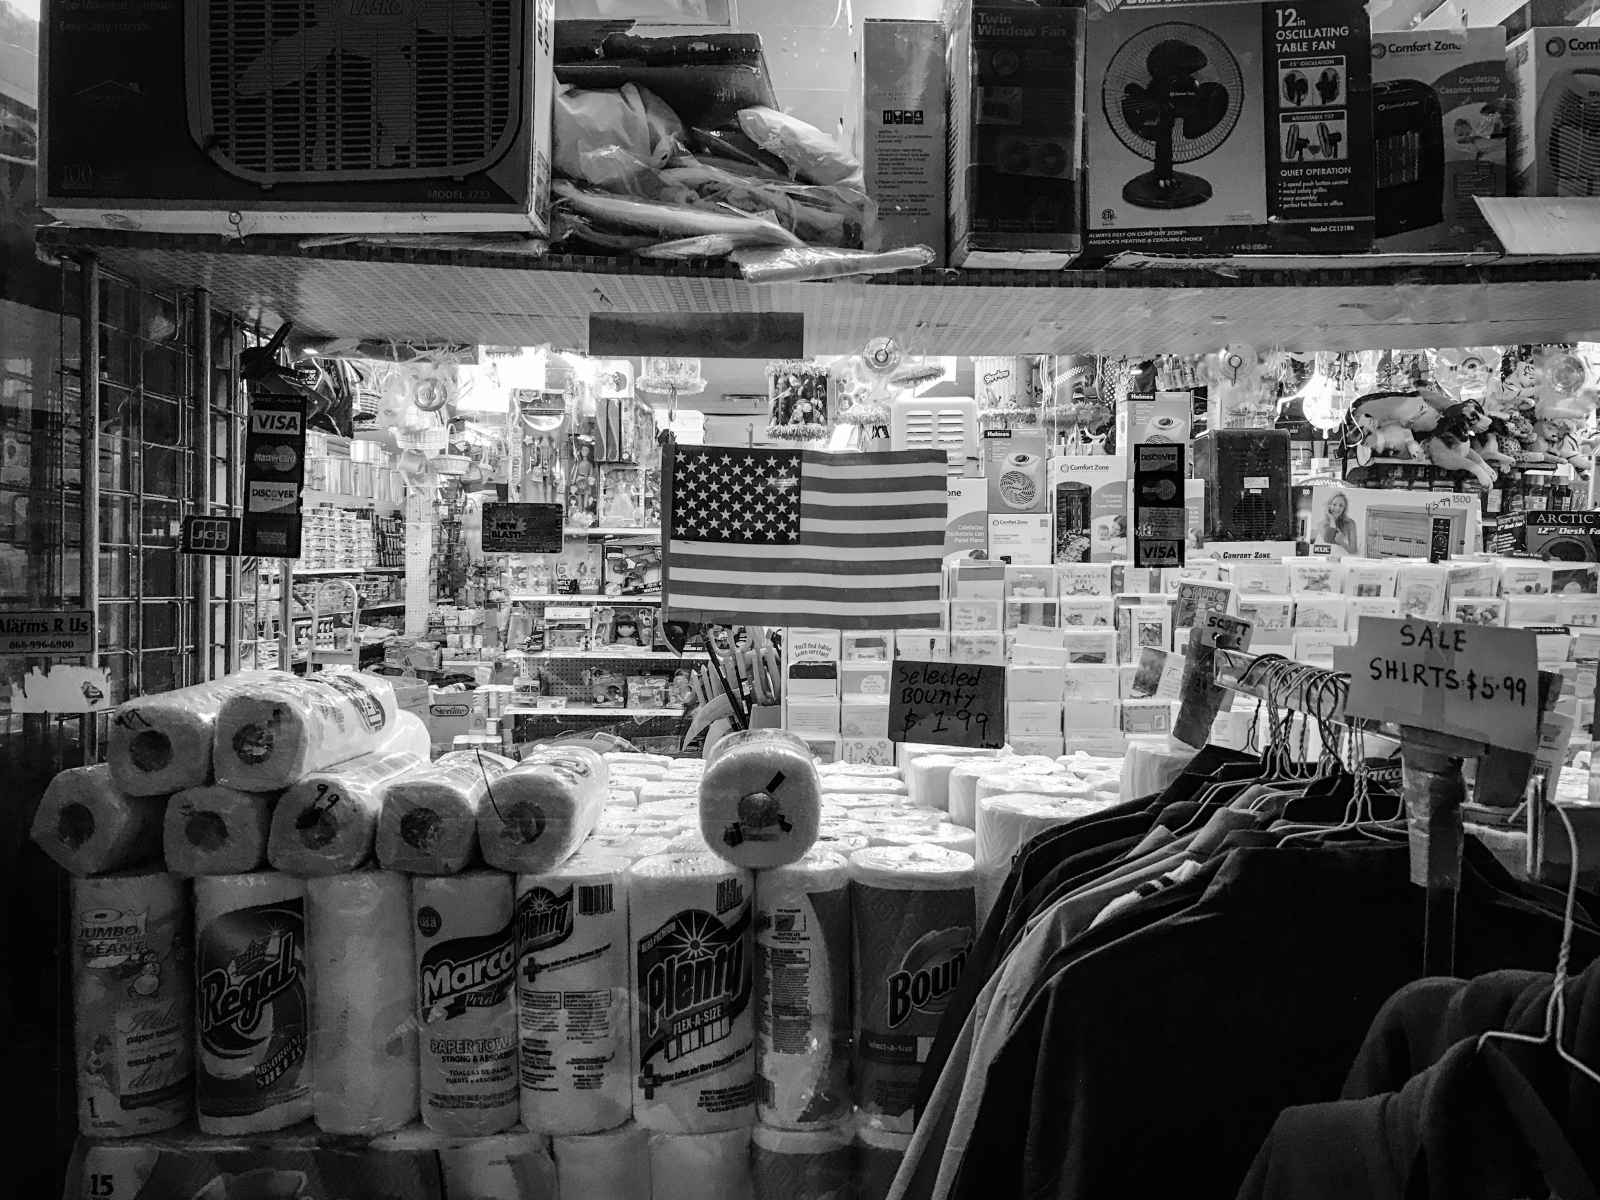 99¢ TREAT Store /  Sunnyside, Queens /  October 2016